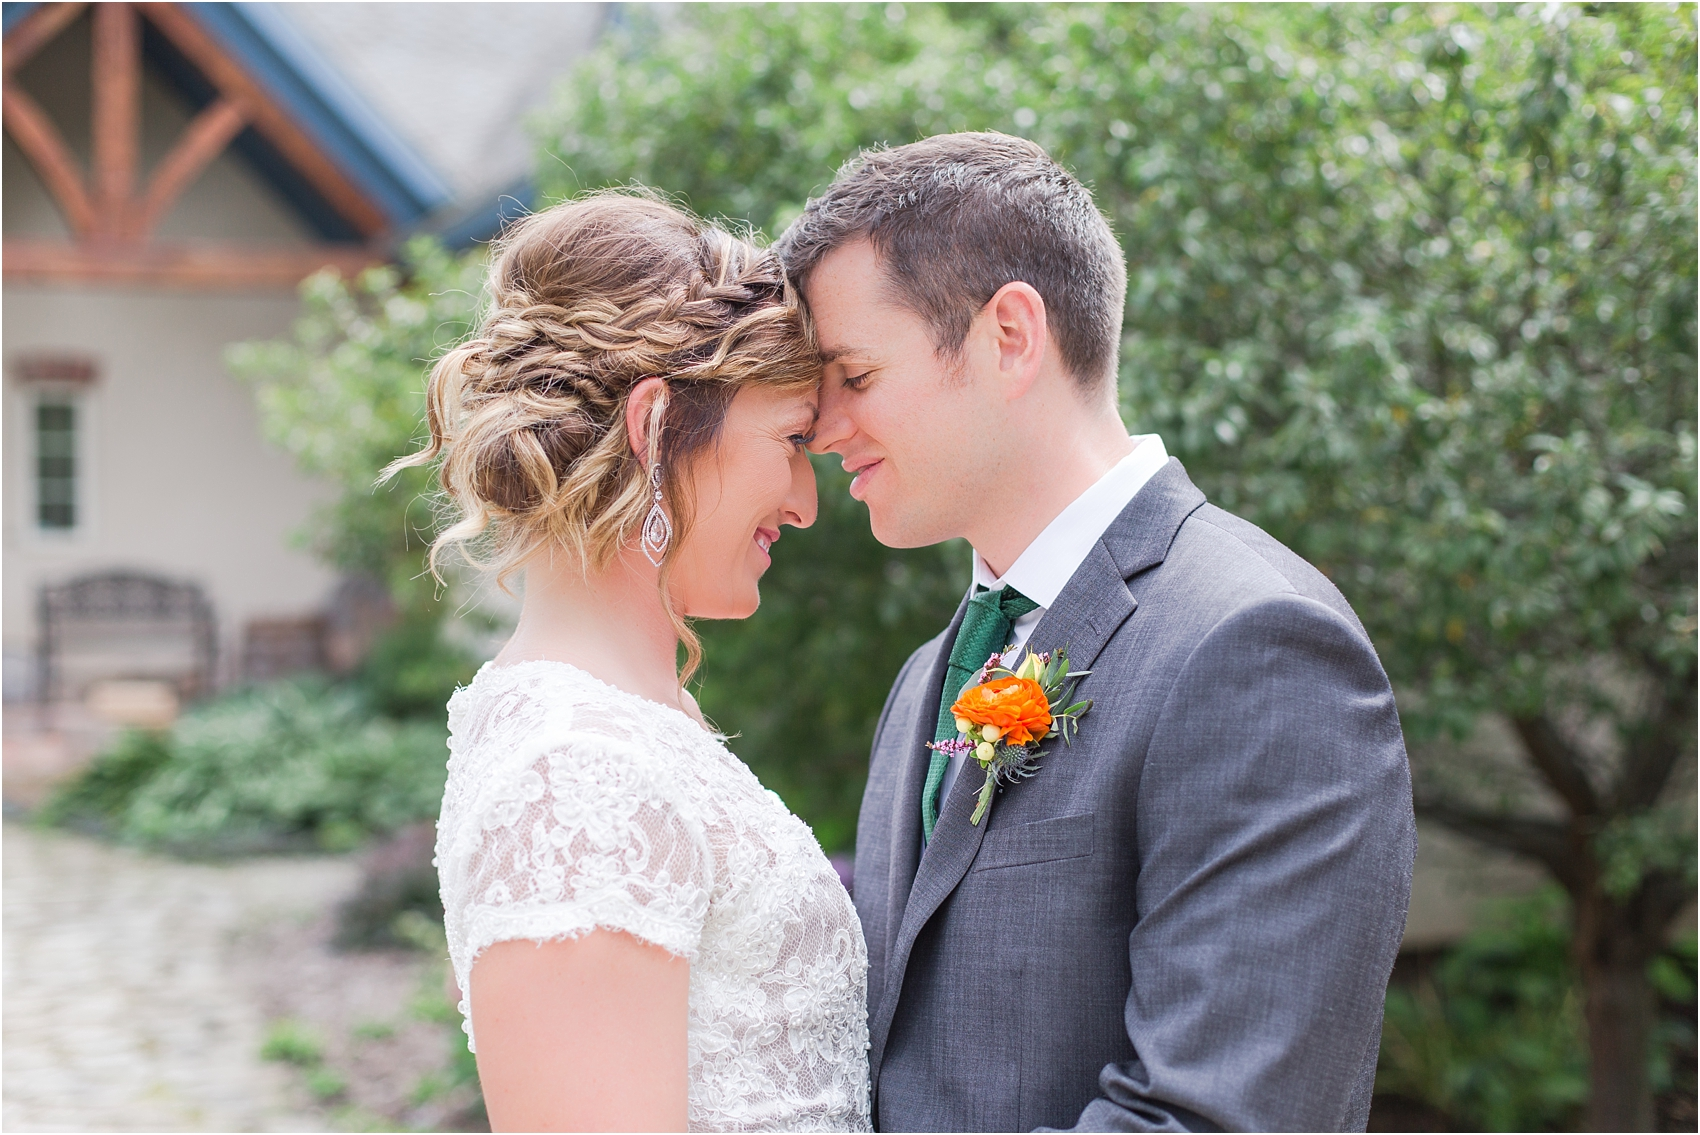 romantic-intimate-backyard-wedding-photos-at-private-estate-in-ann-arbor-mi-by-courtney-carolyn-photography_0077.jpg